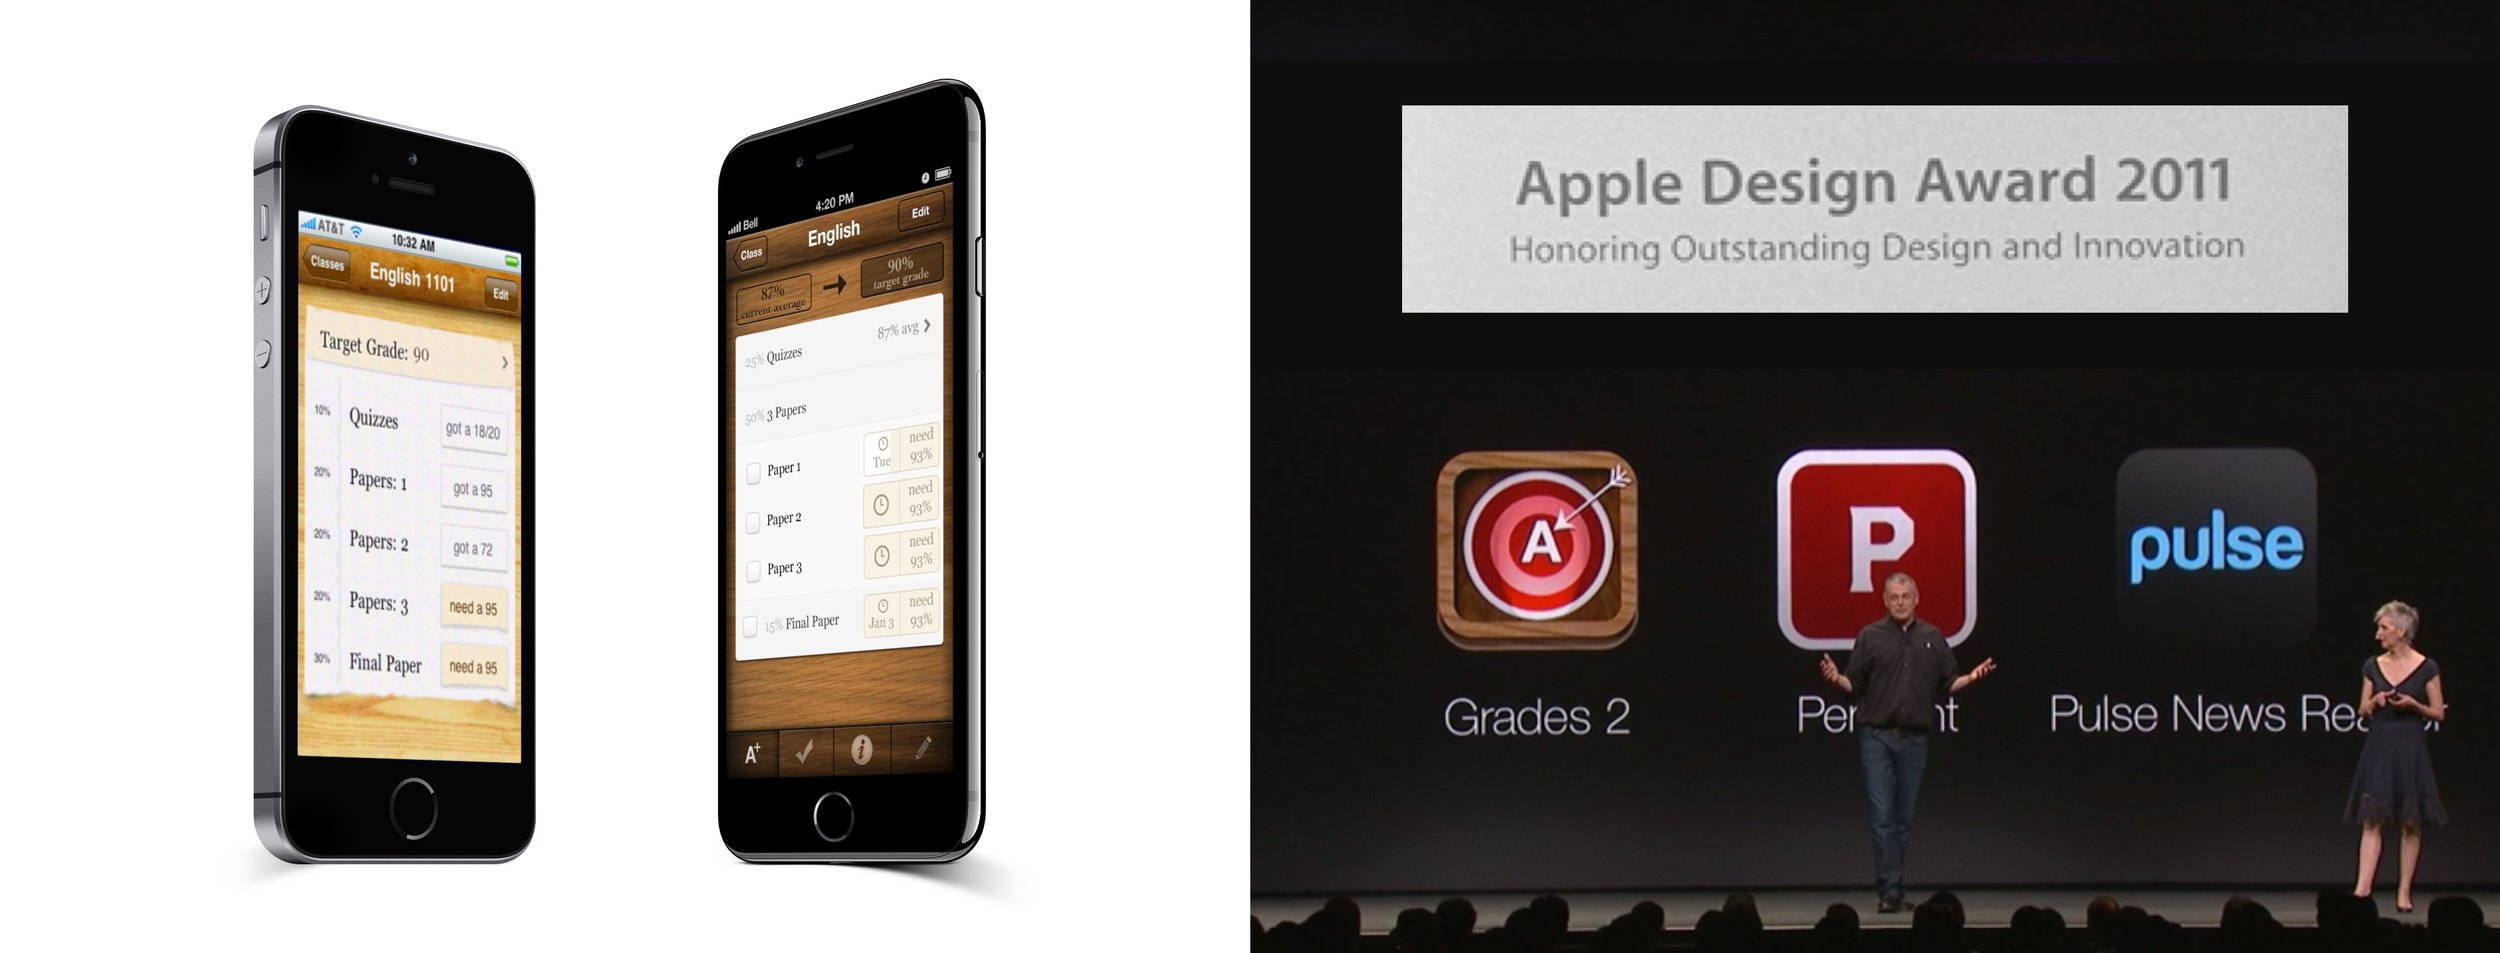 Grades: Tells students what scores they need on upcoming assignments to get their target grade in a class